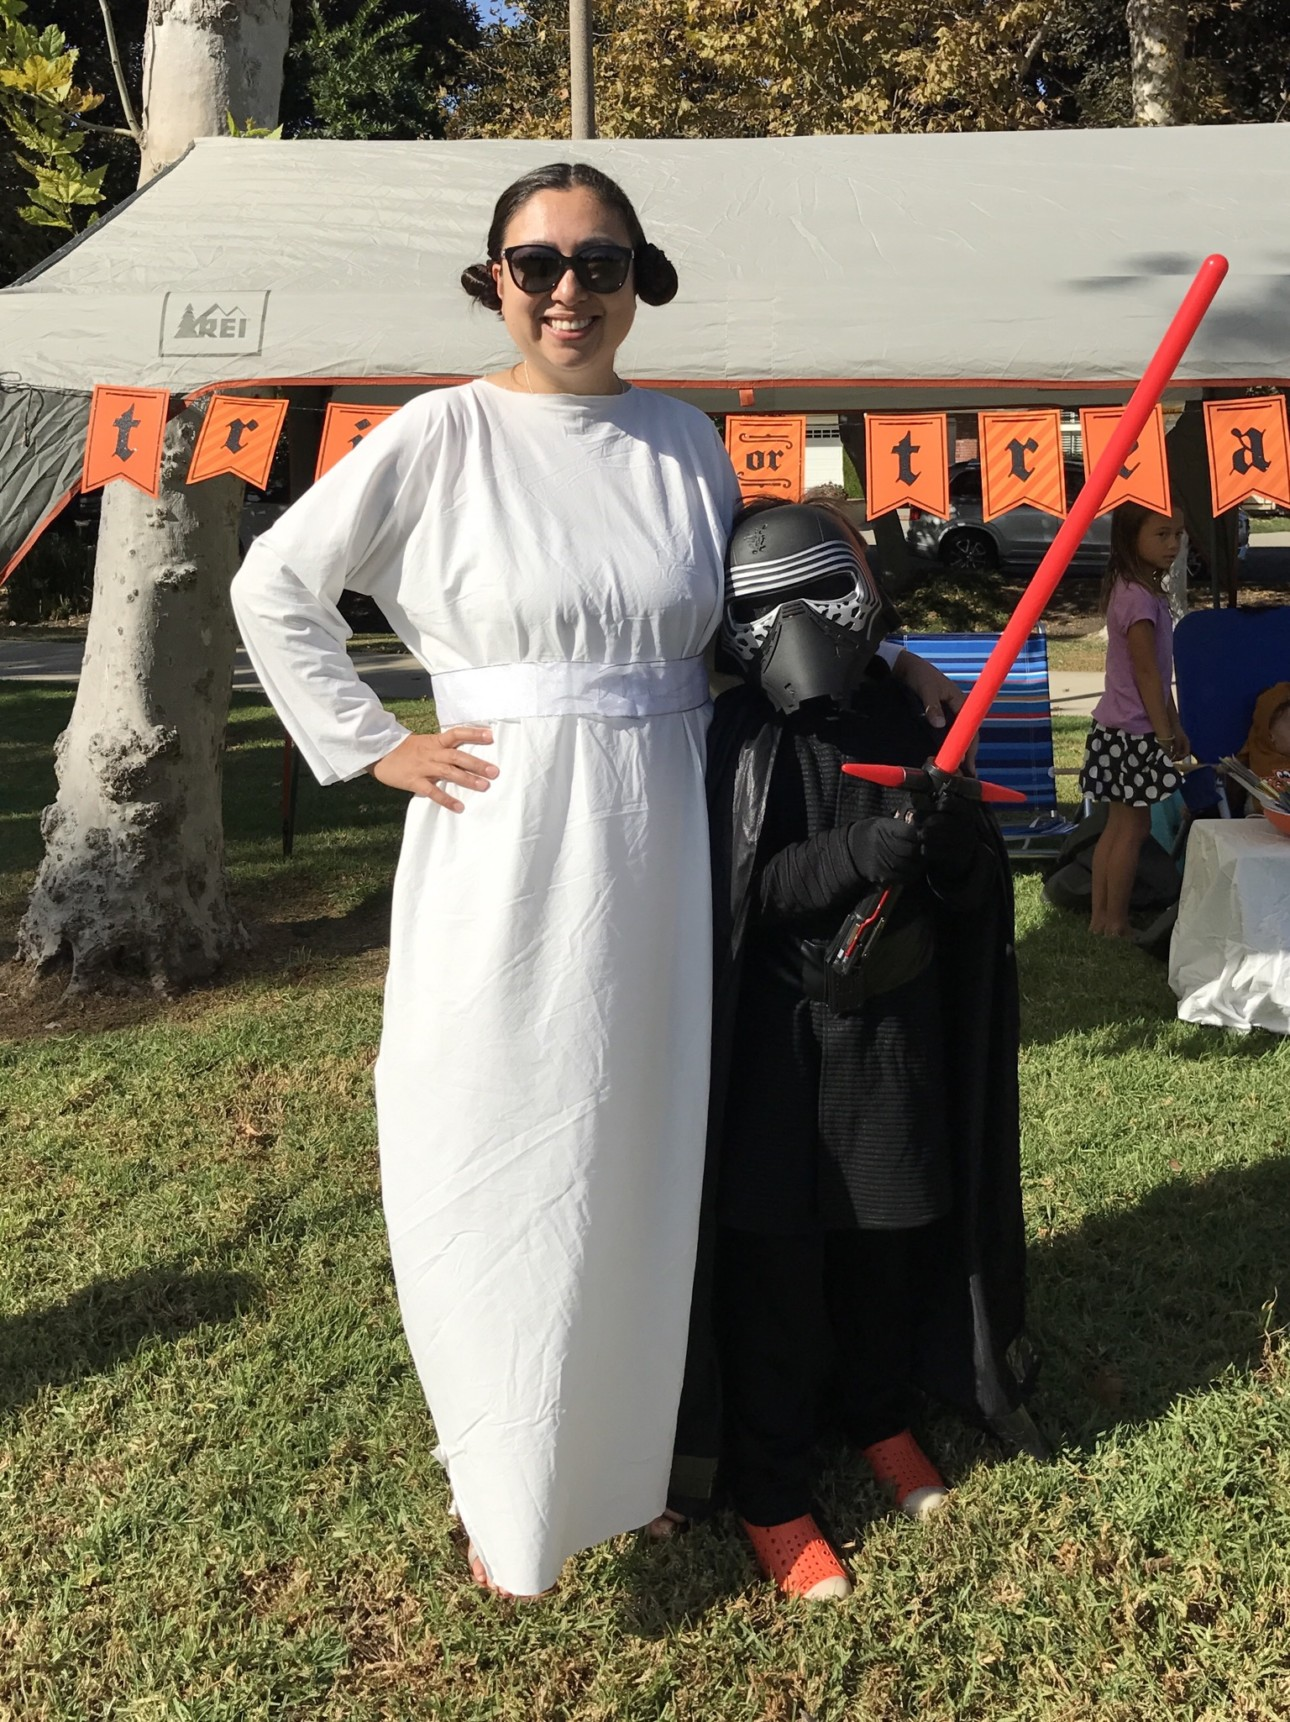 DIY No Sew Princess Leia costume